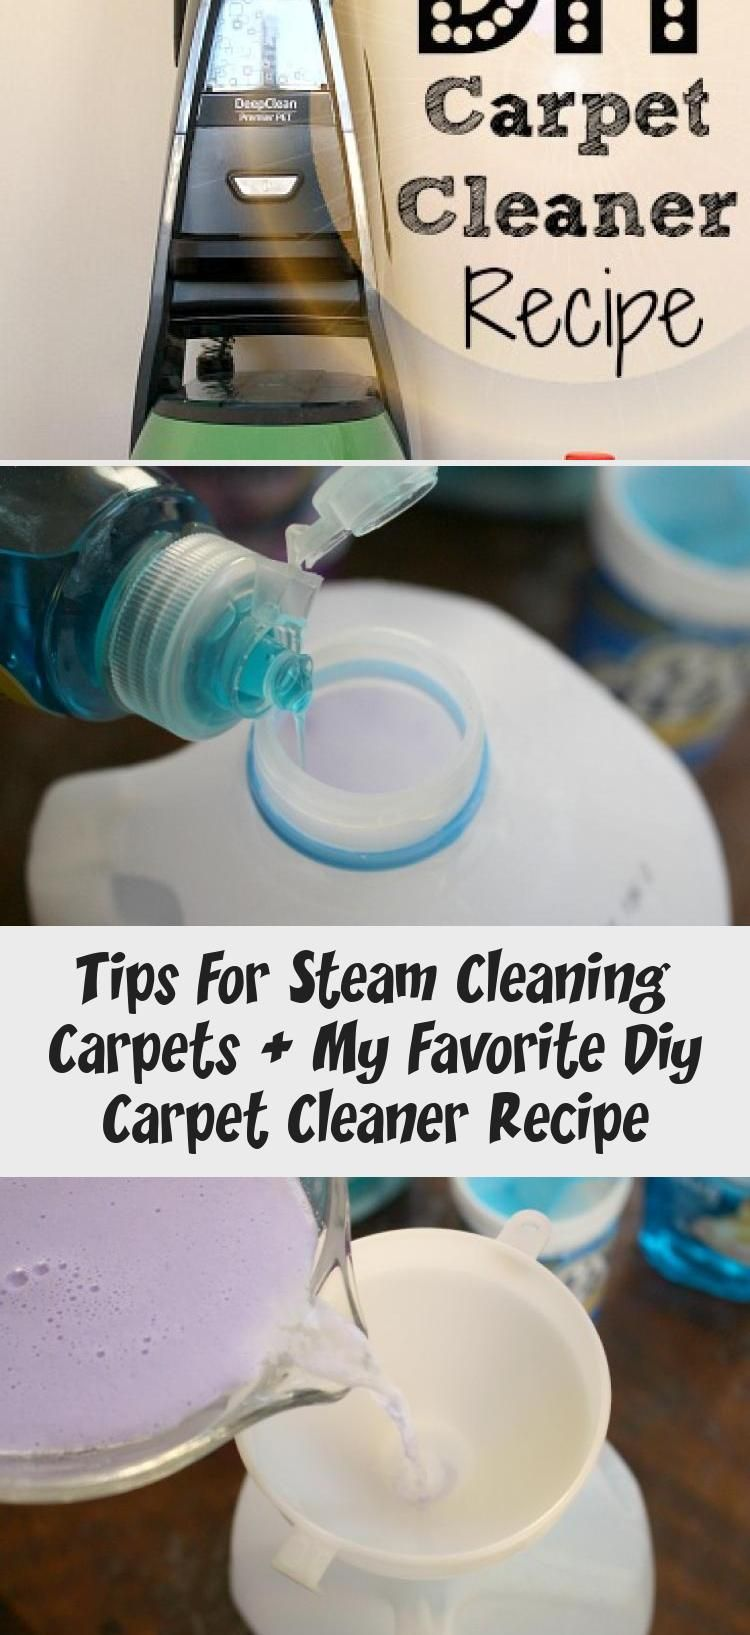 Tips For Steam Cleaning Carpets My Favorite Diy Carpet Cleaner Recipe In 2020 Diy Carpet Diy Carpet Cleaner How To Clean Carpet